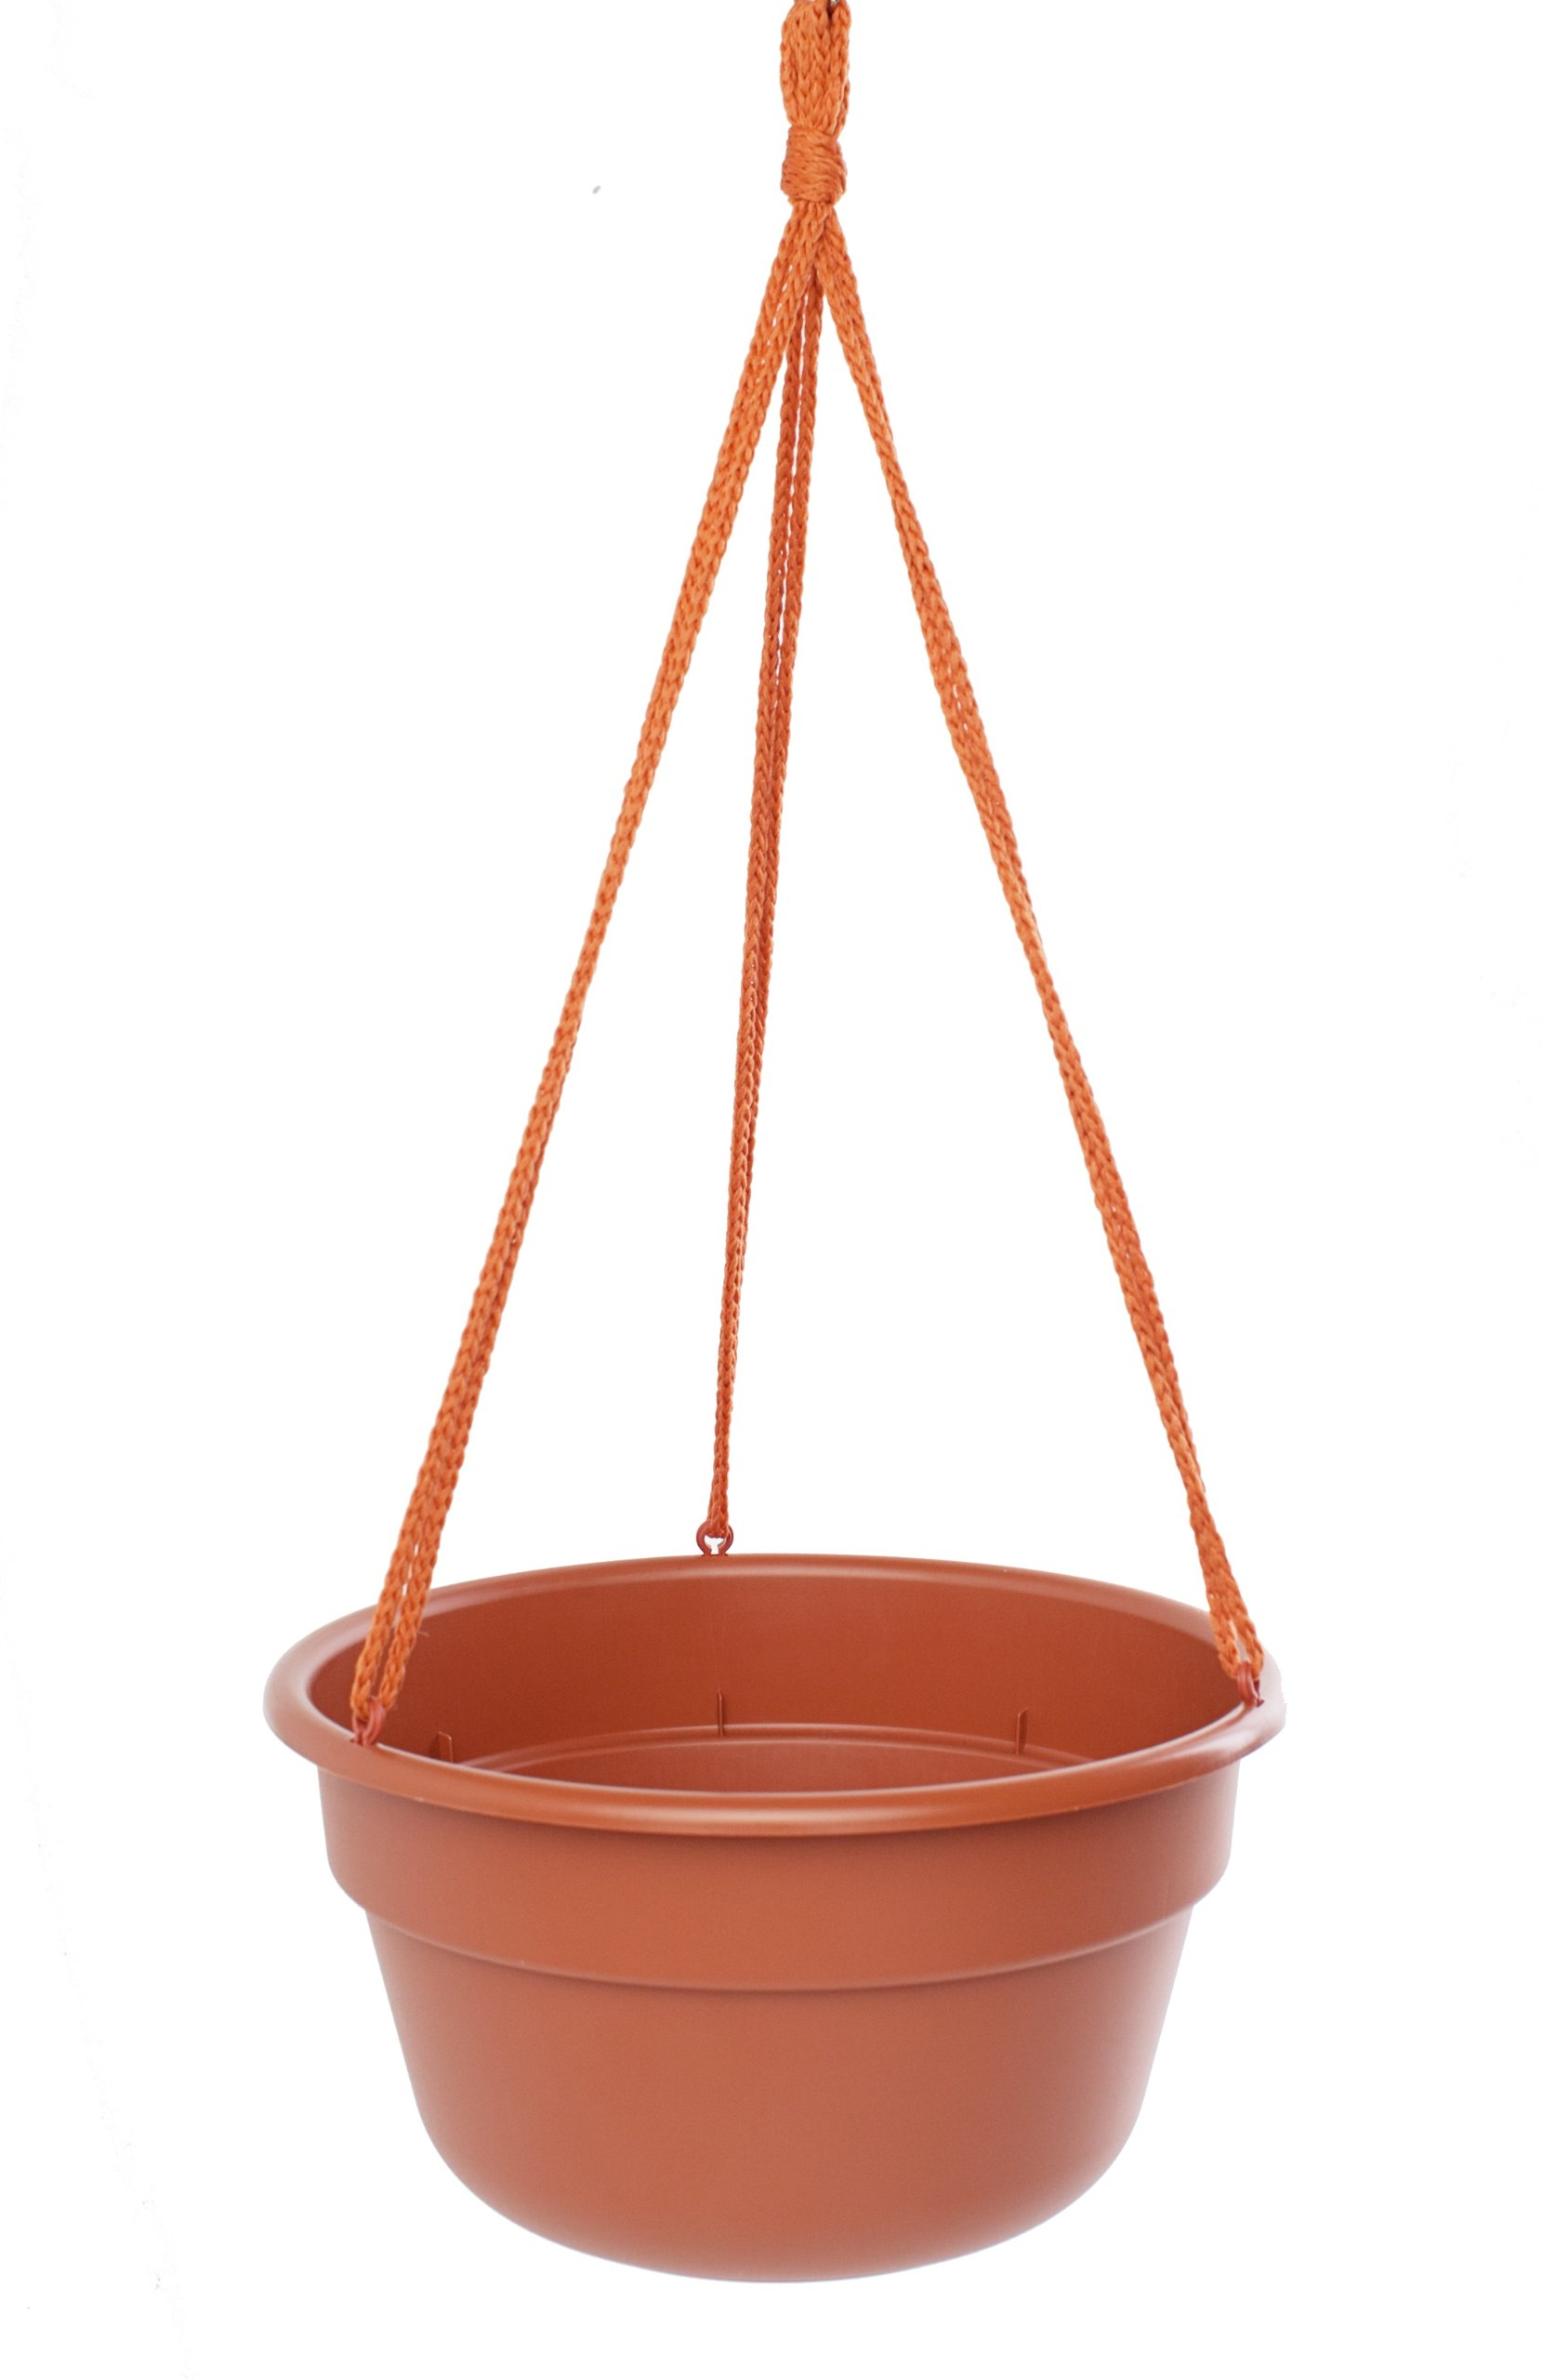 Bloem DCHB1246-12 12-Pack Dura Cotta Hanging Basket/Planter, 12-Inch, Terra Cotta by Bloem